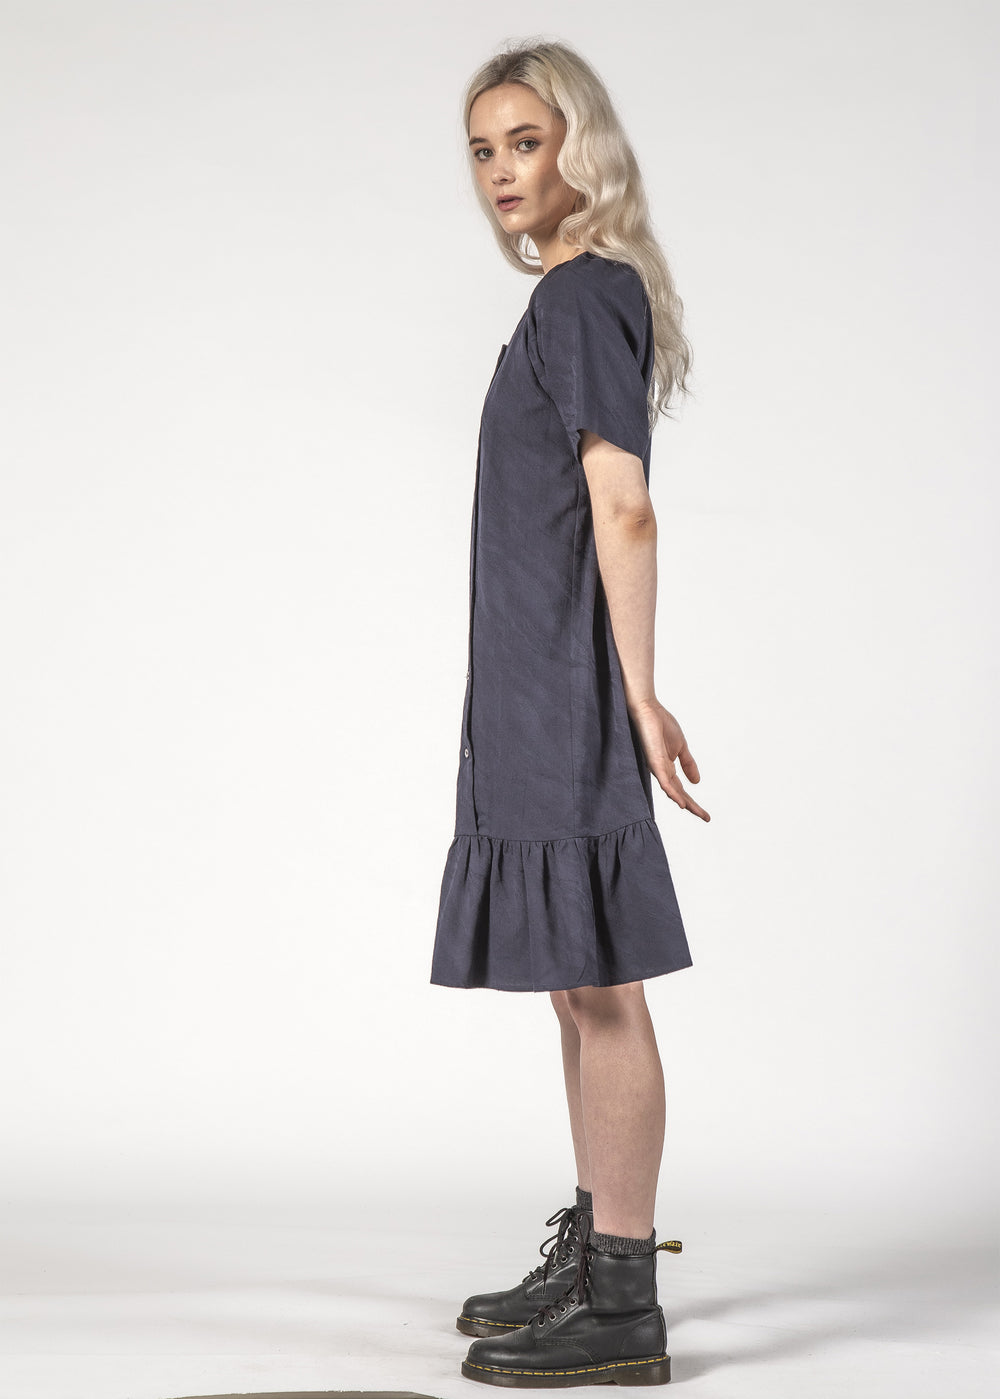 CASSIDY DRESS - NAVY CRINKLE